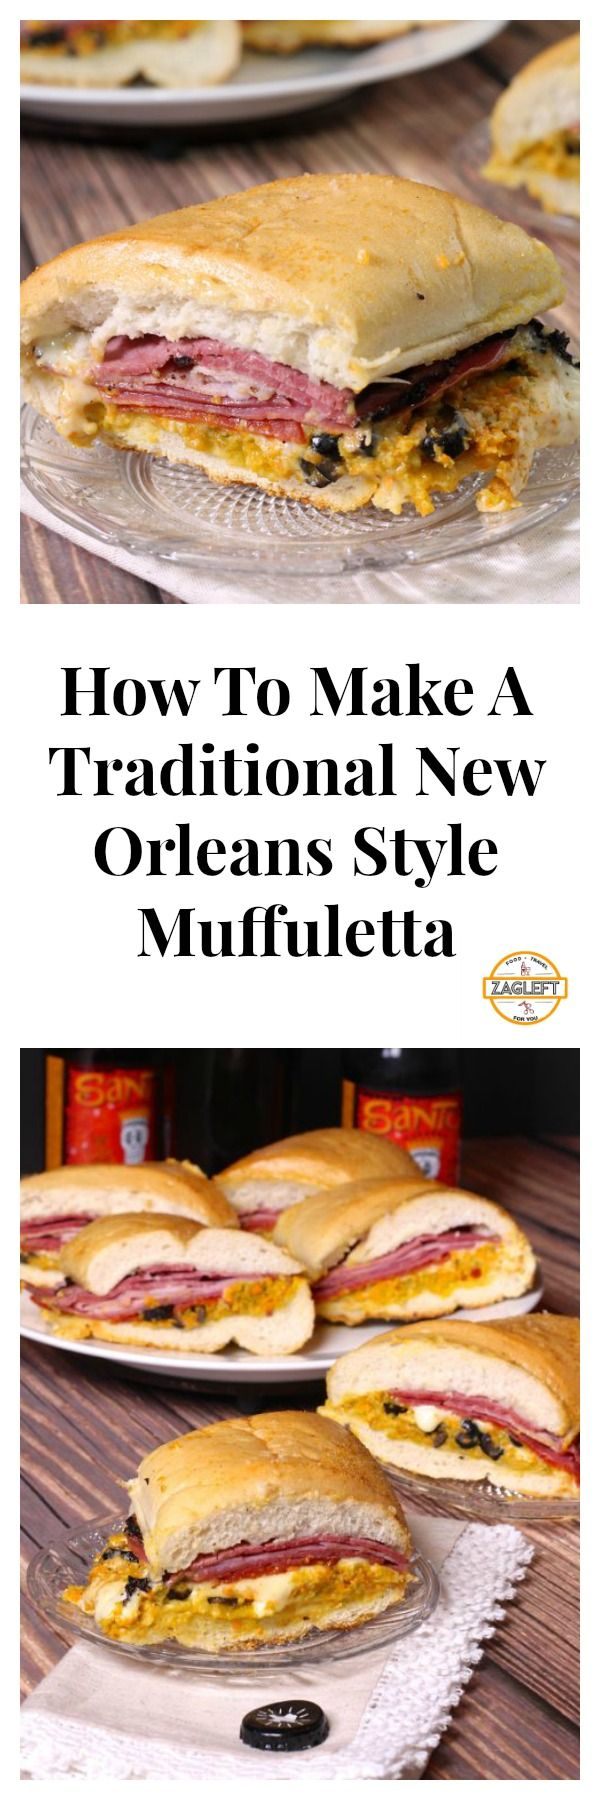 This traditional New Orleans Muffuletta recipe is a favorite of ours. Layers of…